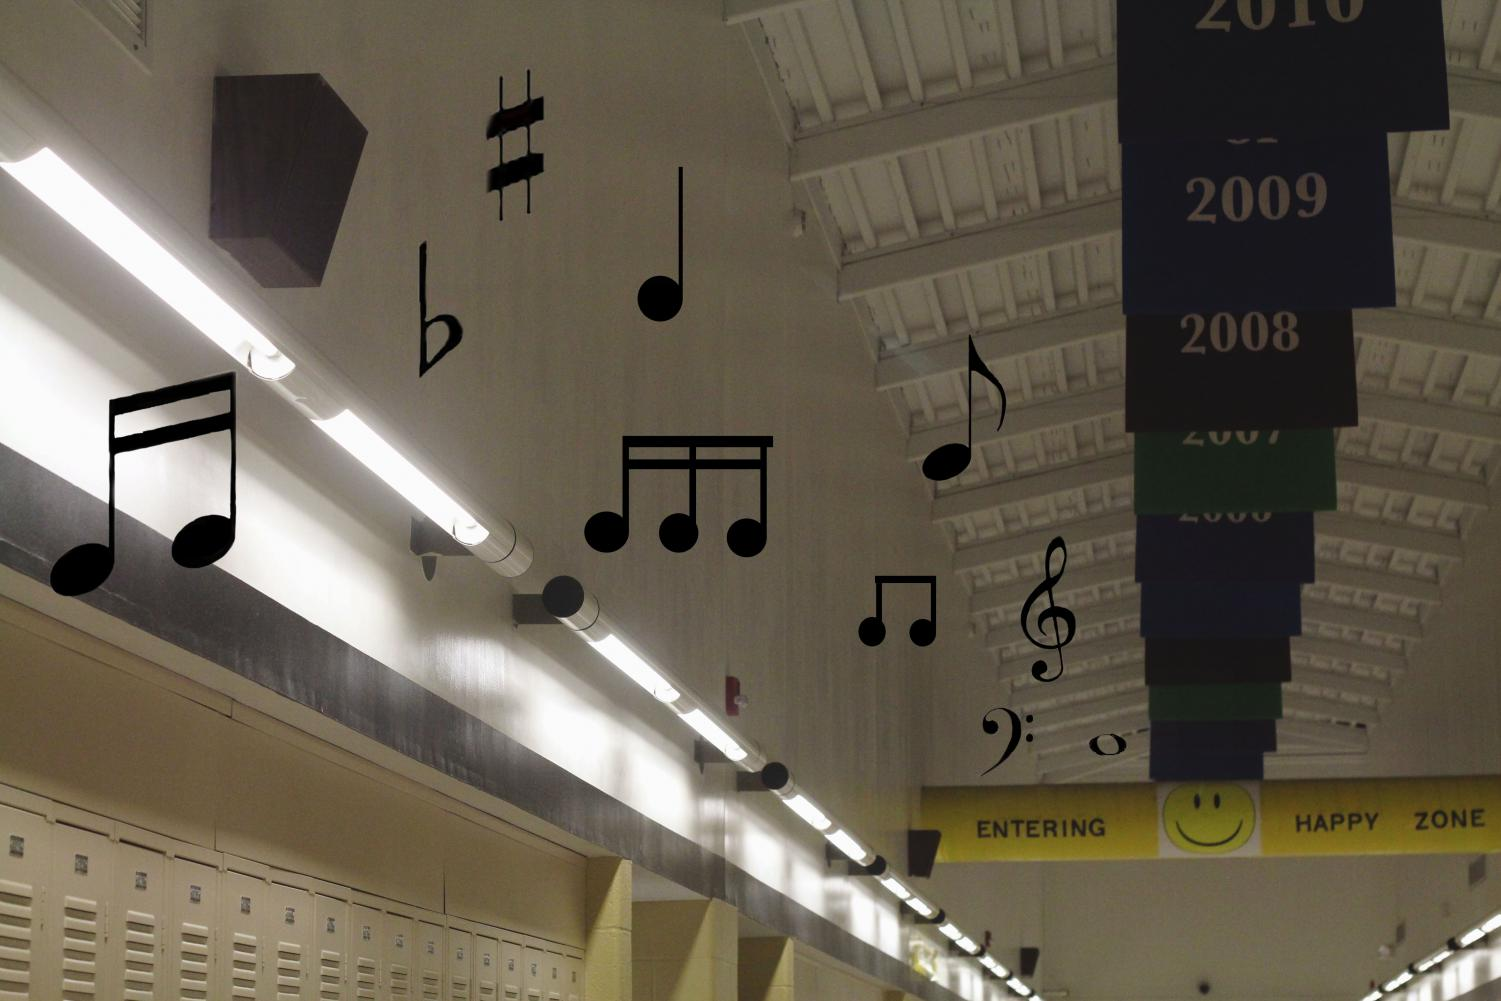 """During the school day, music plays over the intercom for students walking through the halls. Songs can range from country to rap, as long as it's school appropriate. """"It's a good idea and people being able to recommend songs is cool,"""" junior Brandon Bridgeman said. (Photo illustration by Addy Bradbury)"""